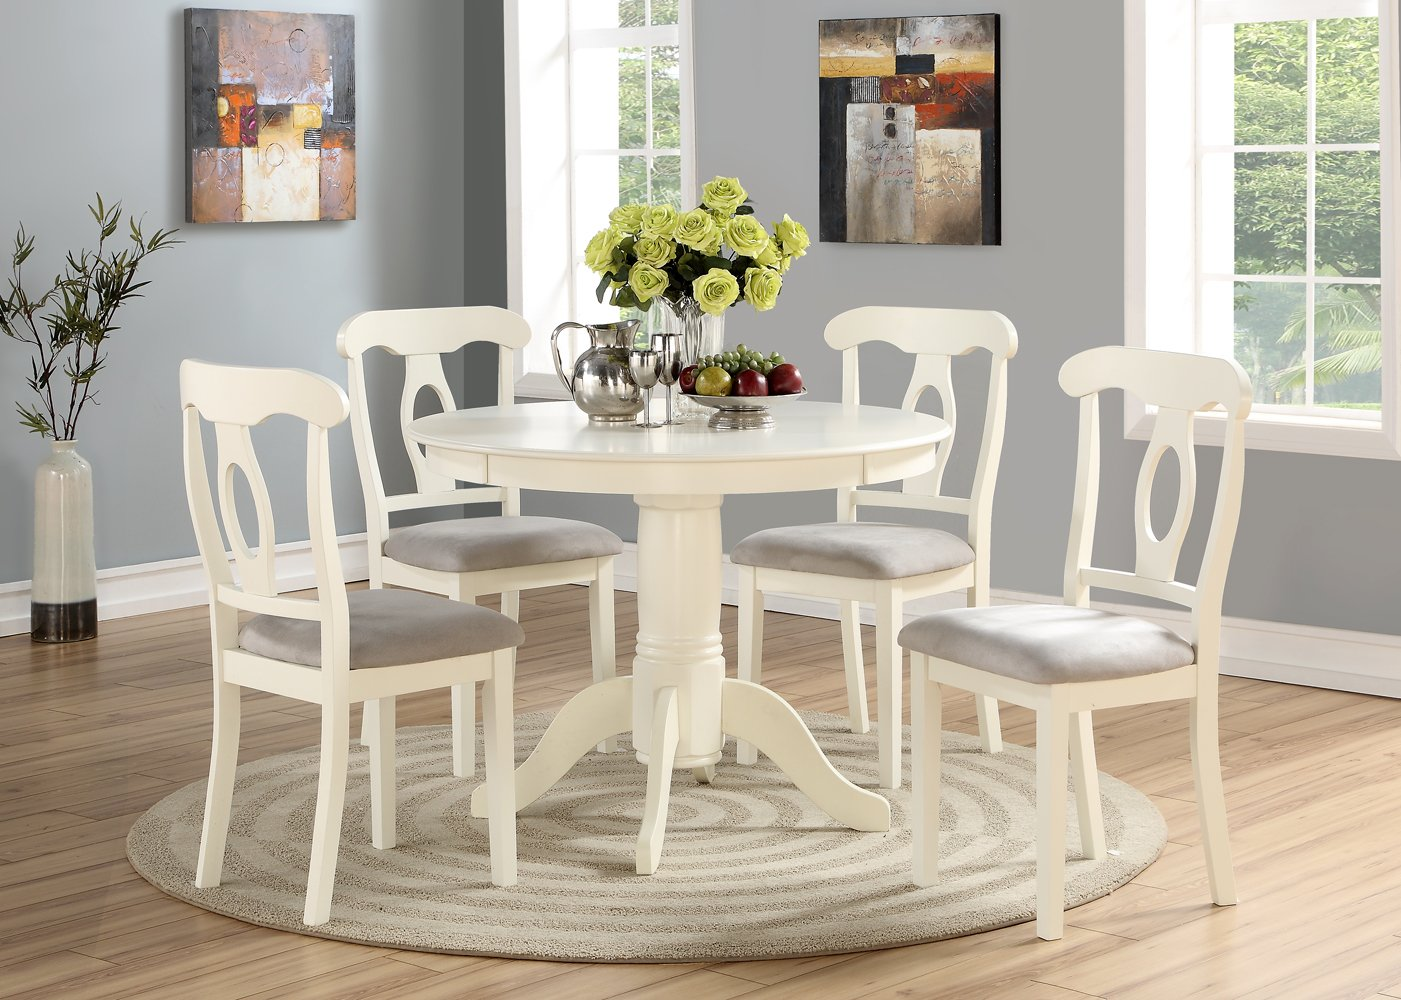 best website f1ea4 8b0e9 Angel Line 23511-21 5 Piece Lindsey Dining Set, White/Gray